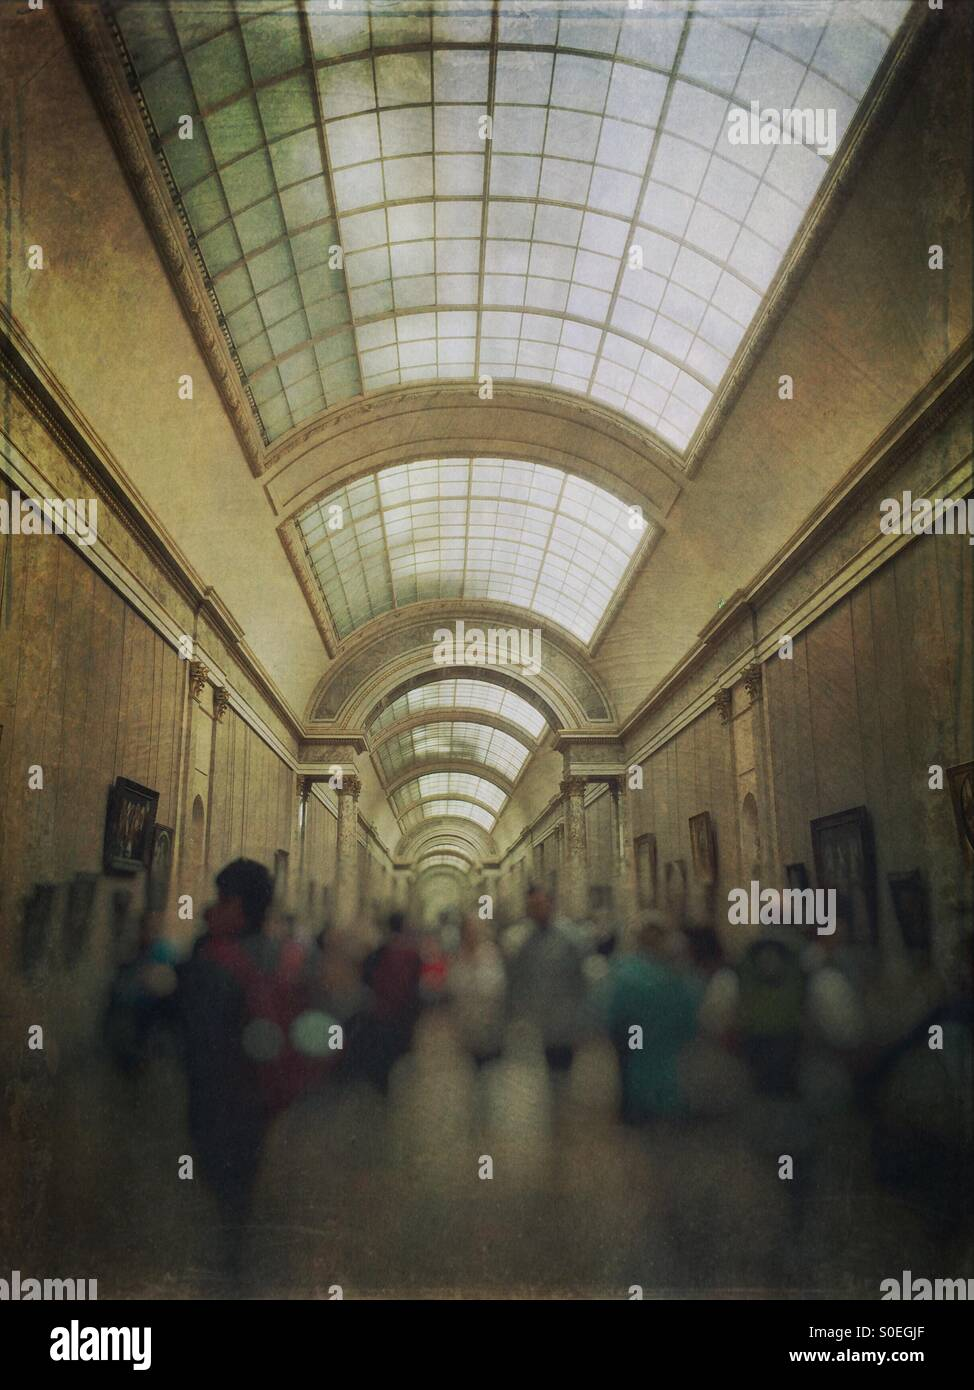 Crowd of tourists at the Grande Galerie or Grand Gallery in the Louvre museum in Paris, France. Vintage texture - Stock Image